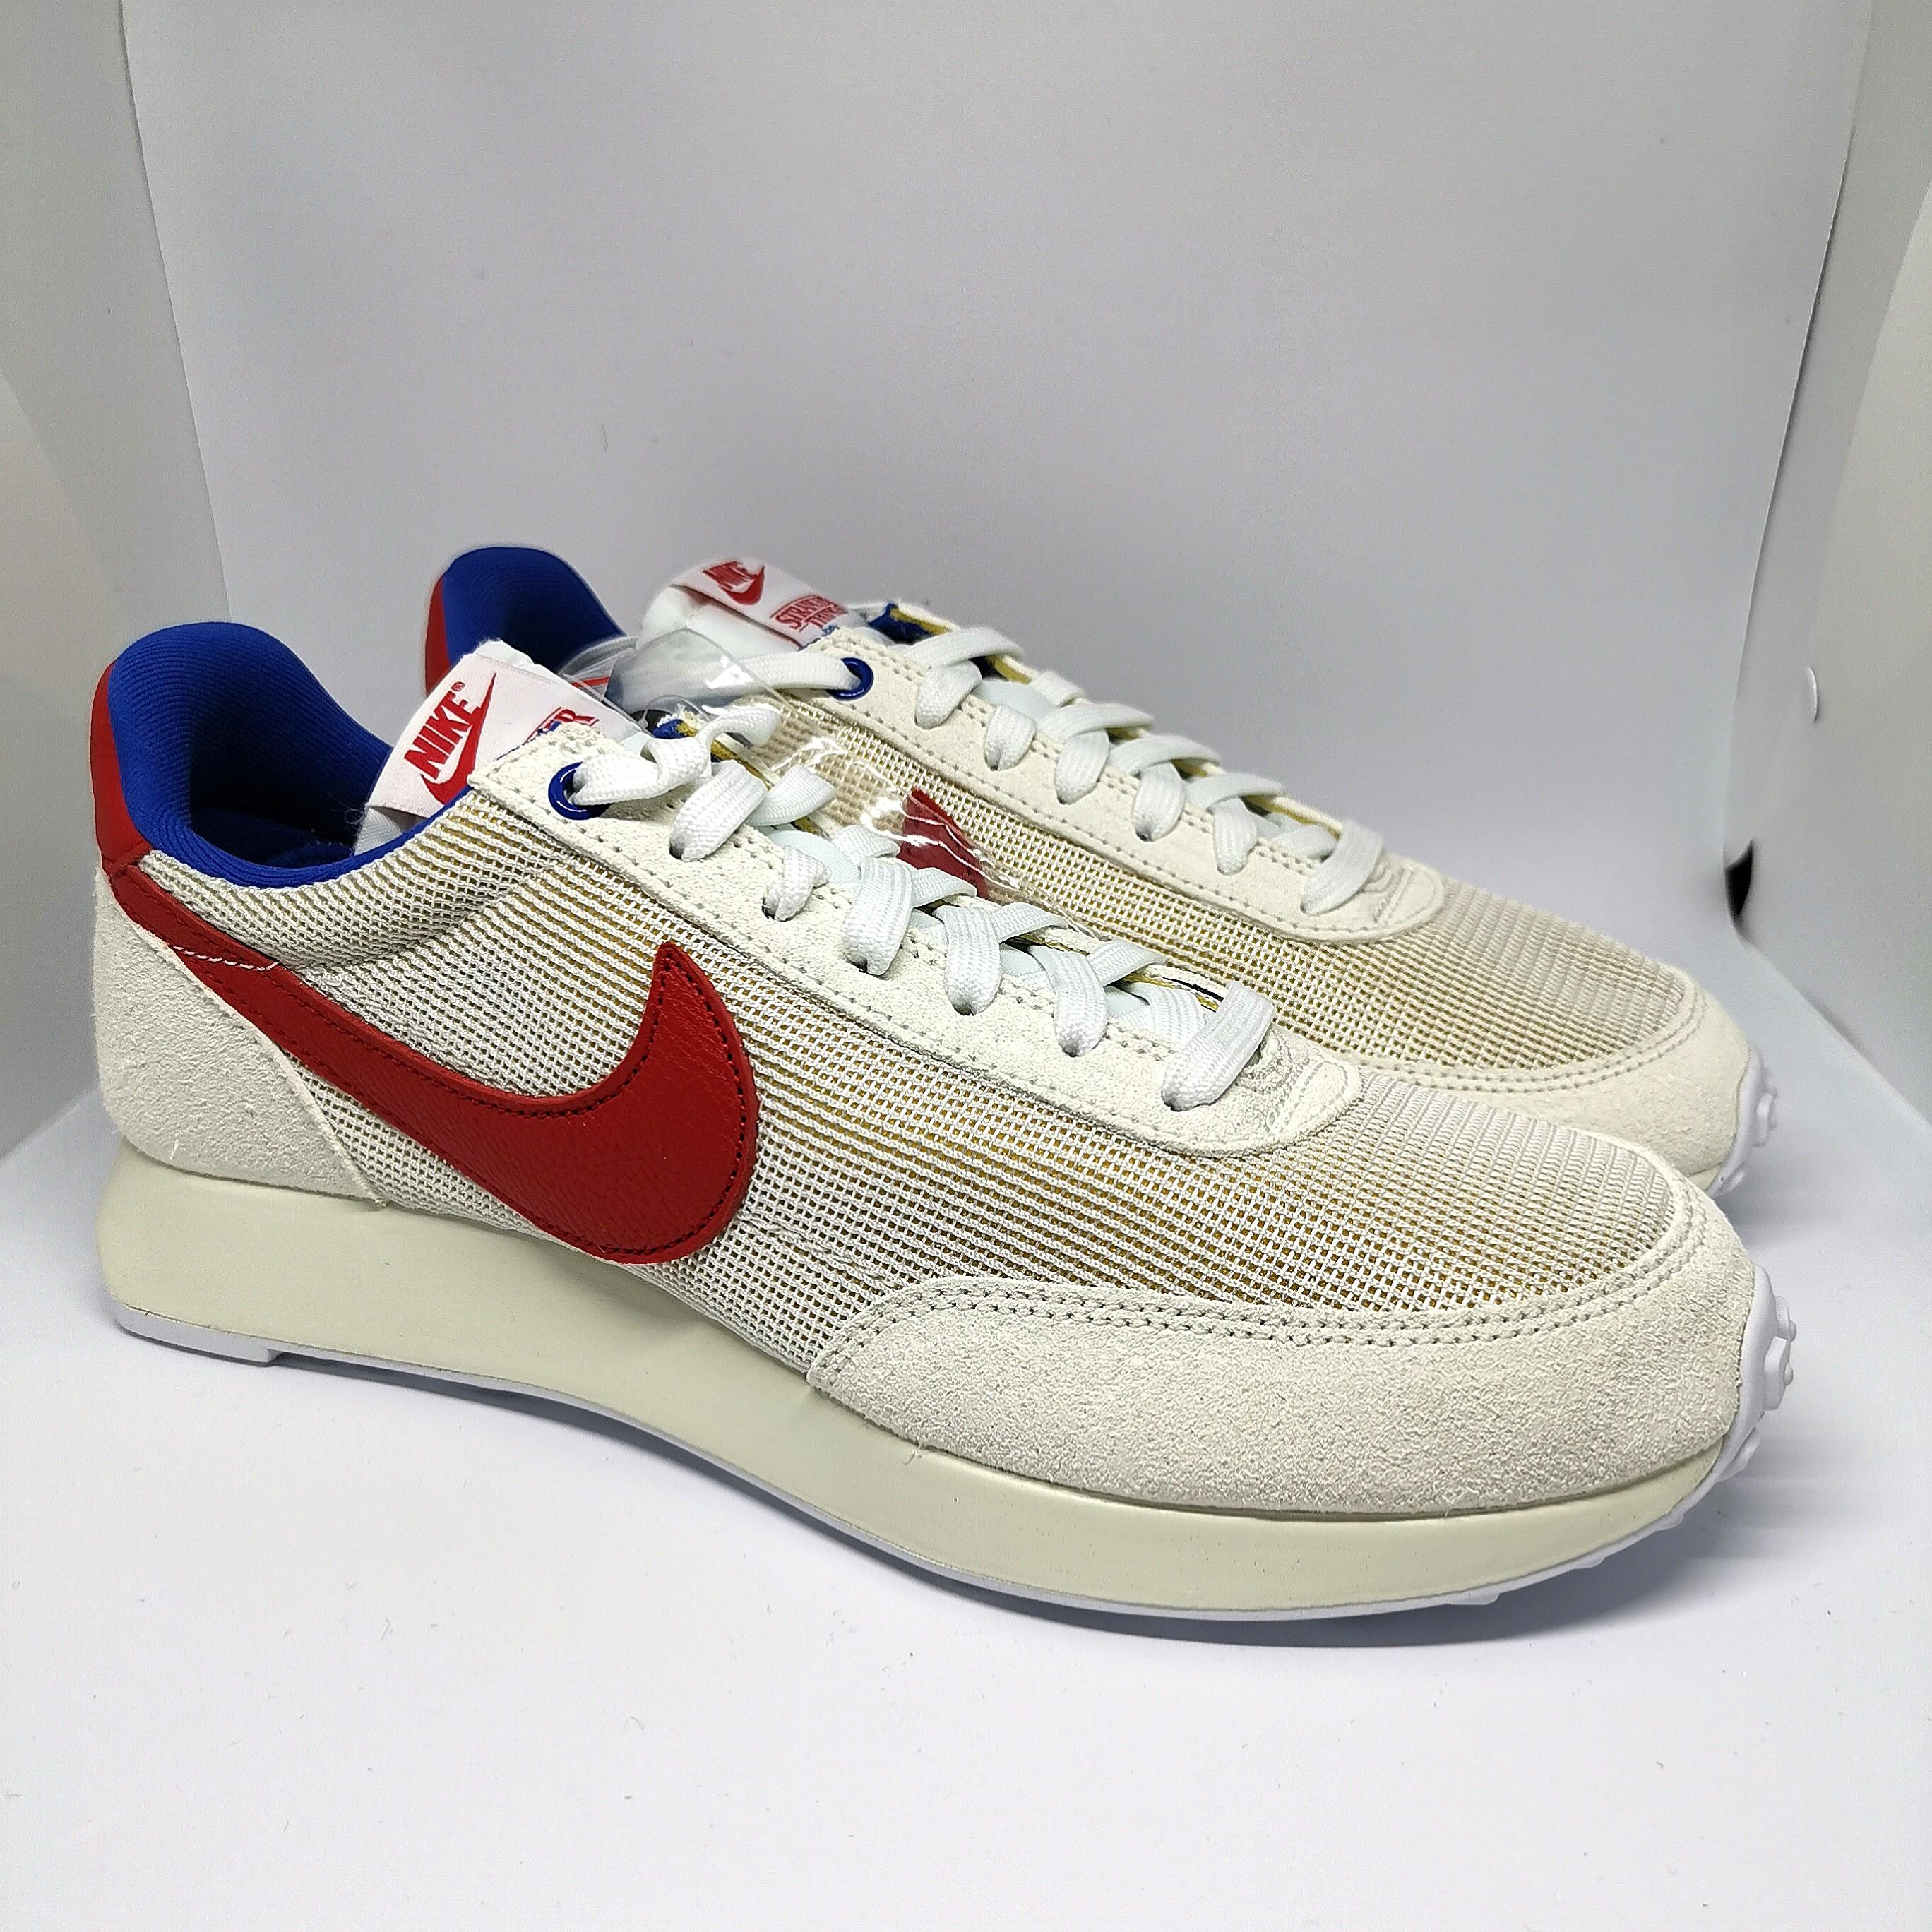 newest 106f6 26a83 US 9) Nike X Stranger Things Air Tailwind 79, Men's Fashion ...